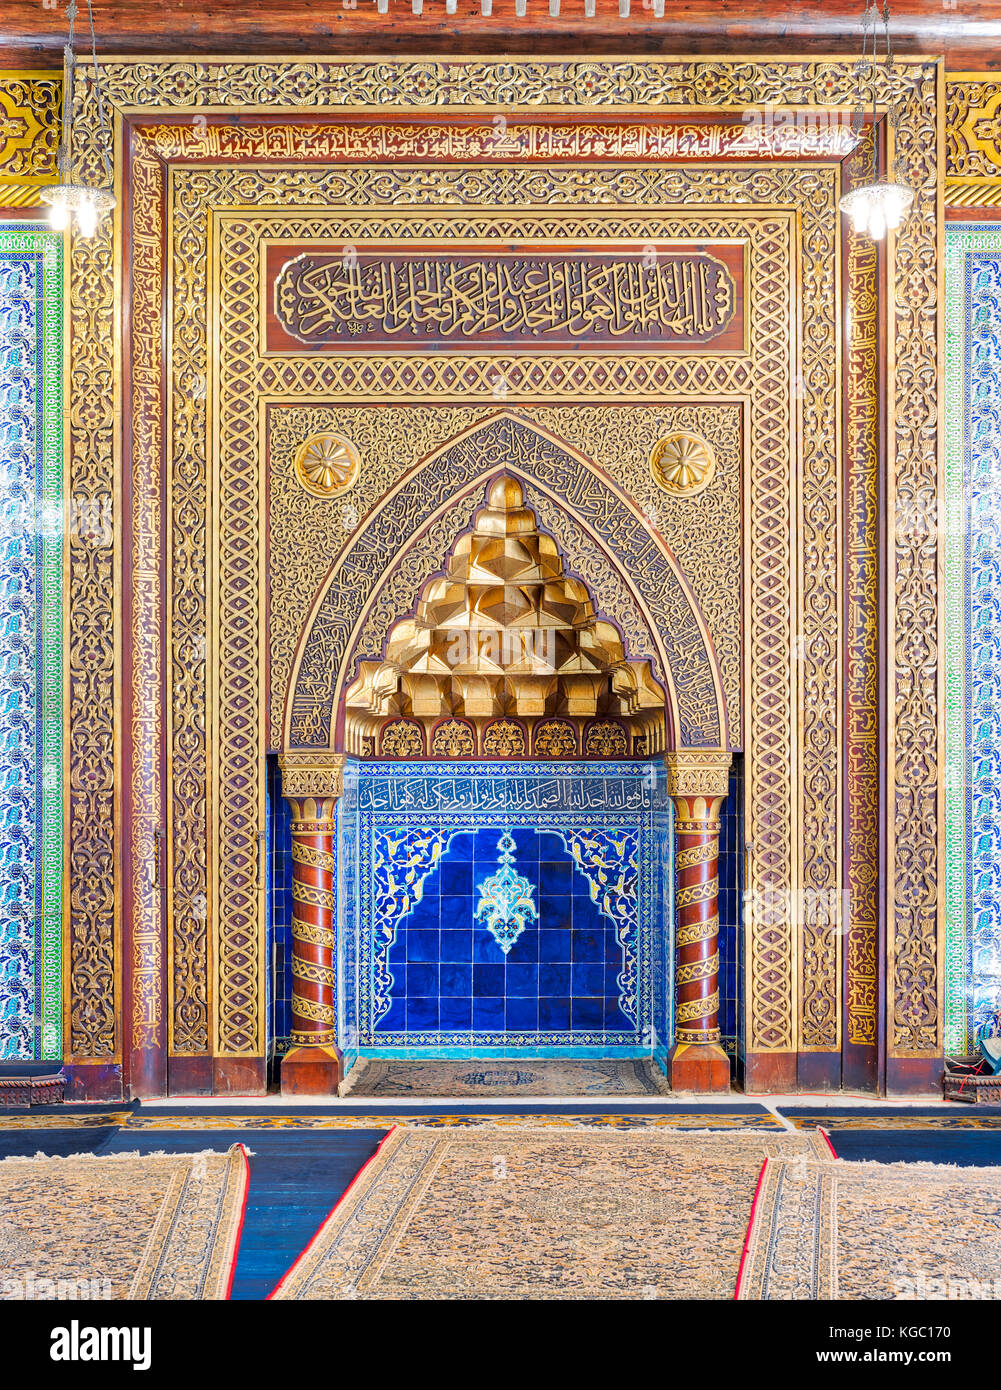 Golden ornate arched mihrab (niche) with floral pattern, blue Turkish ceramic tiles and arabic calligraphy at the - Stock Image